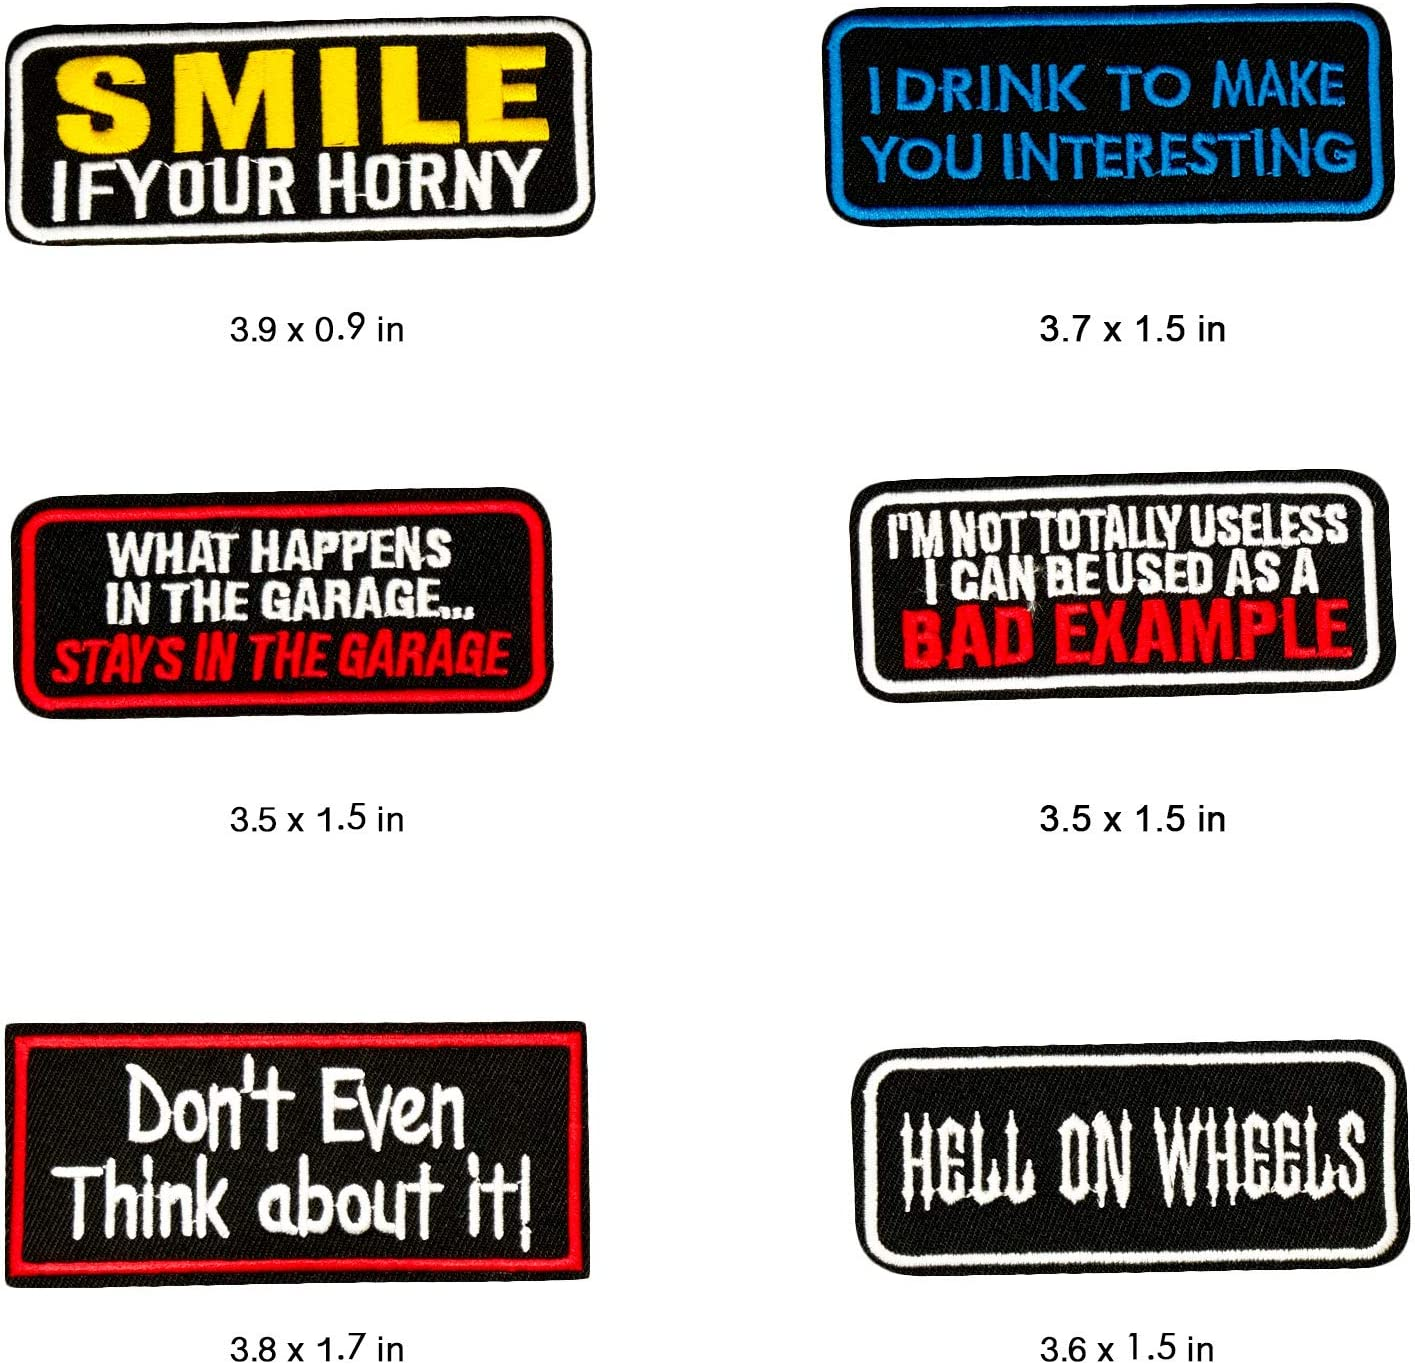 Word Patches Embroidered Patch Sew-on or Iron-on Patches for Jeans Jackets Clothes Backpacks Pants Hats Wlkq Wappen Wappen-17-20pcs Mixed Colors Set 15-20pcs